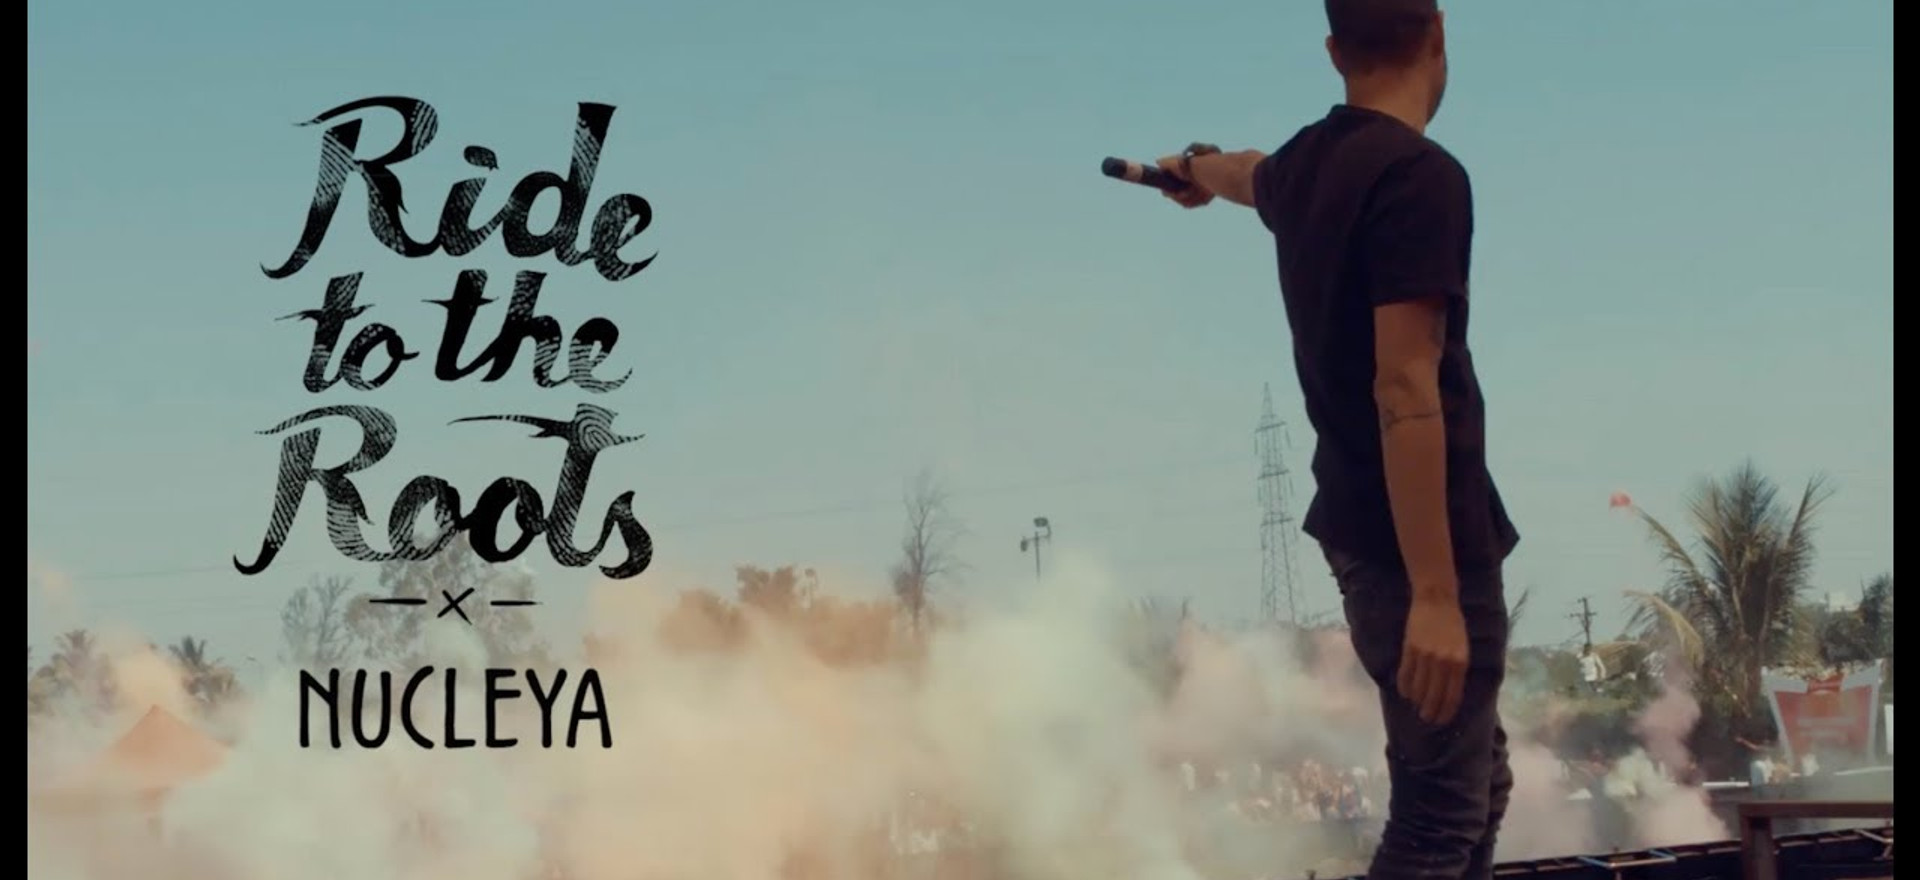 NUCLEYA - Ride To The Roots Documentary